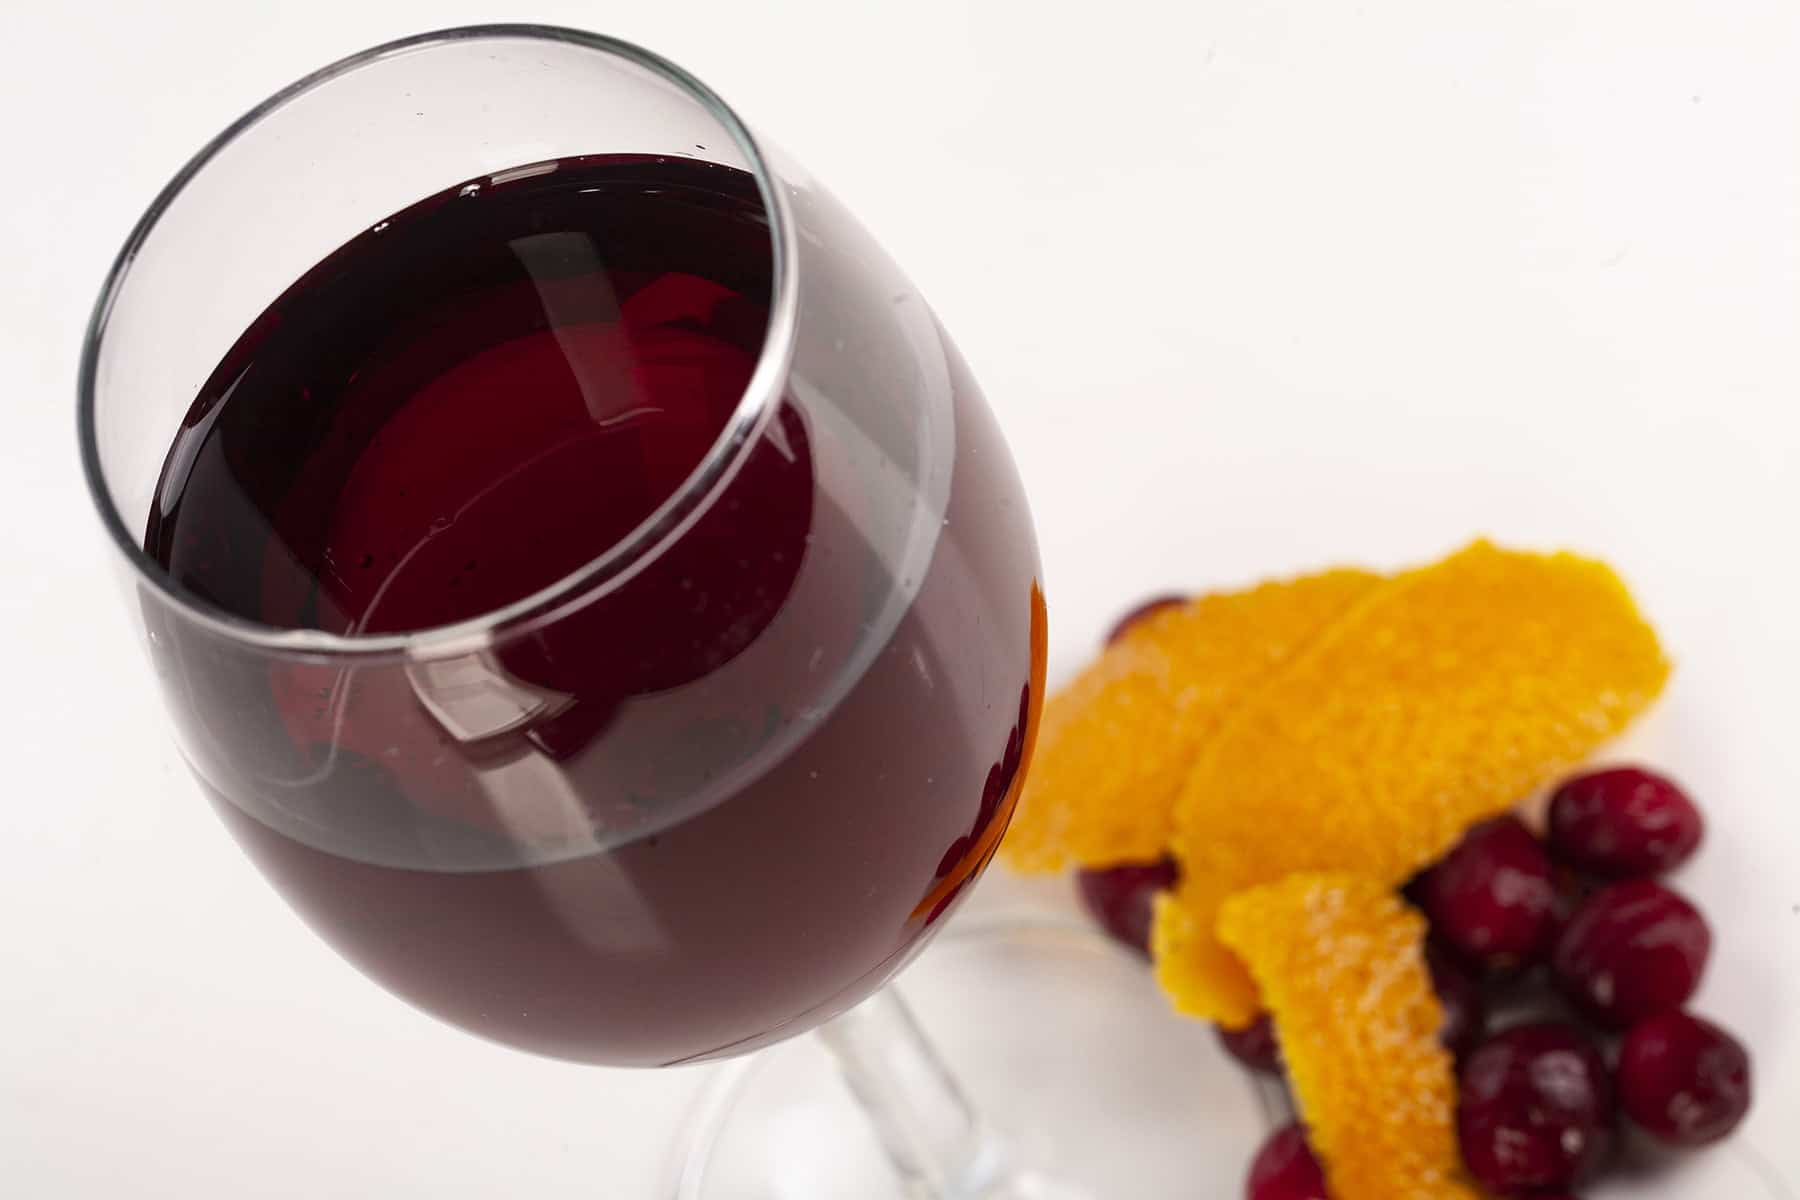 A close up view of a wine glass with with a deep red wine. There are cranberries and orange peels at the base of the glass, against a white background.